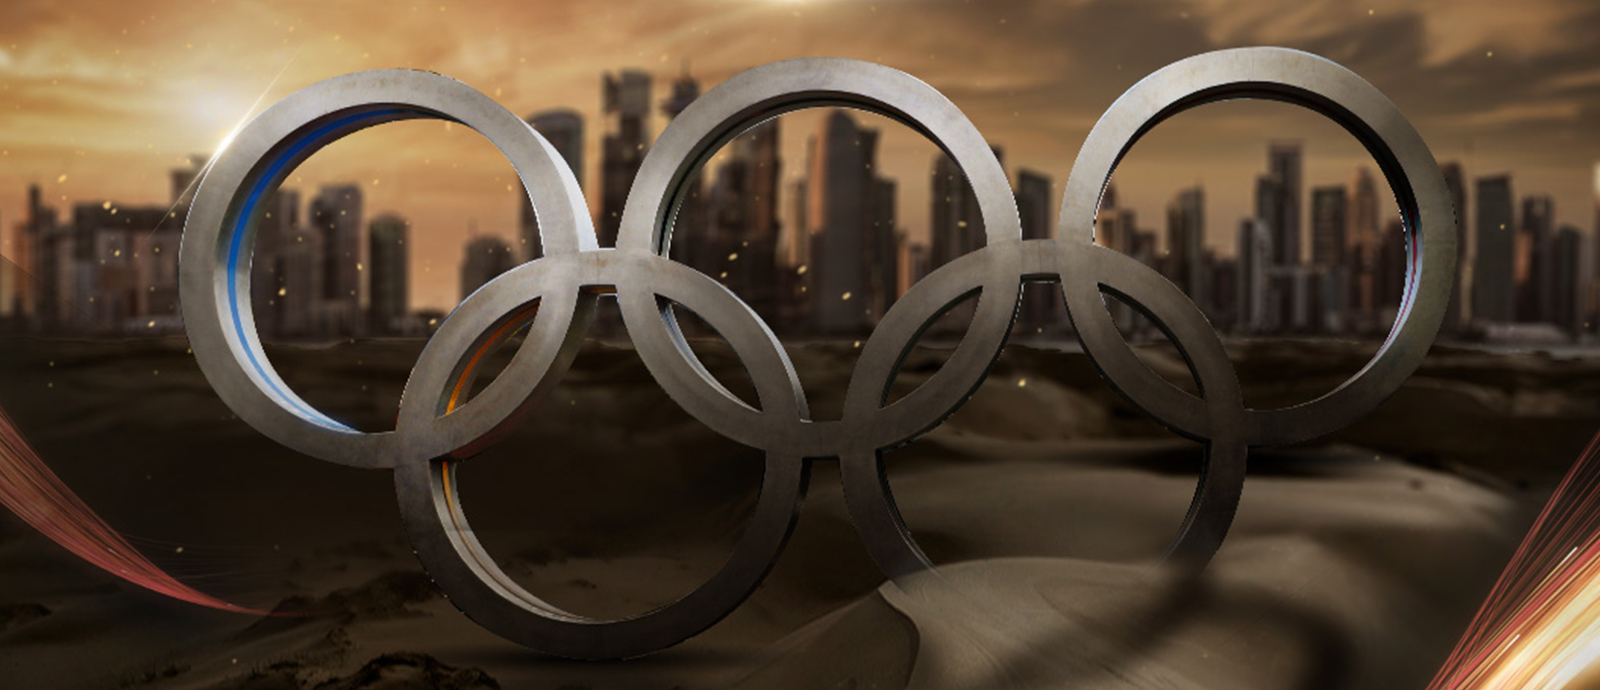 QOC announces interest to host future Olympic and Paralympic Games